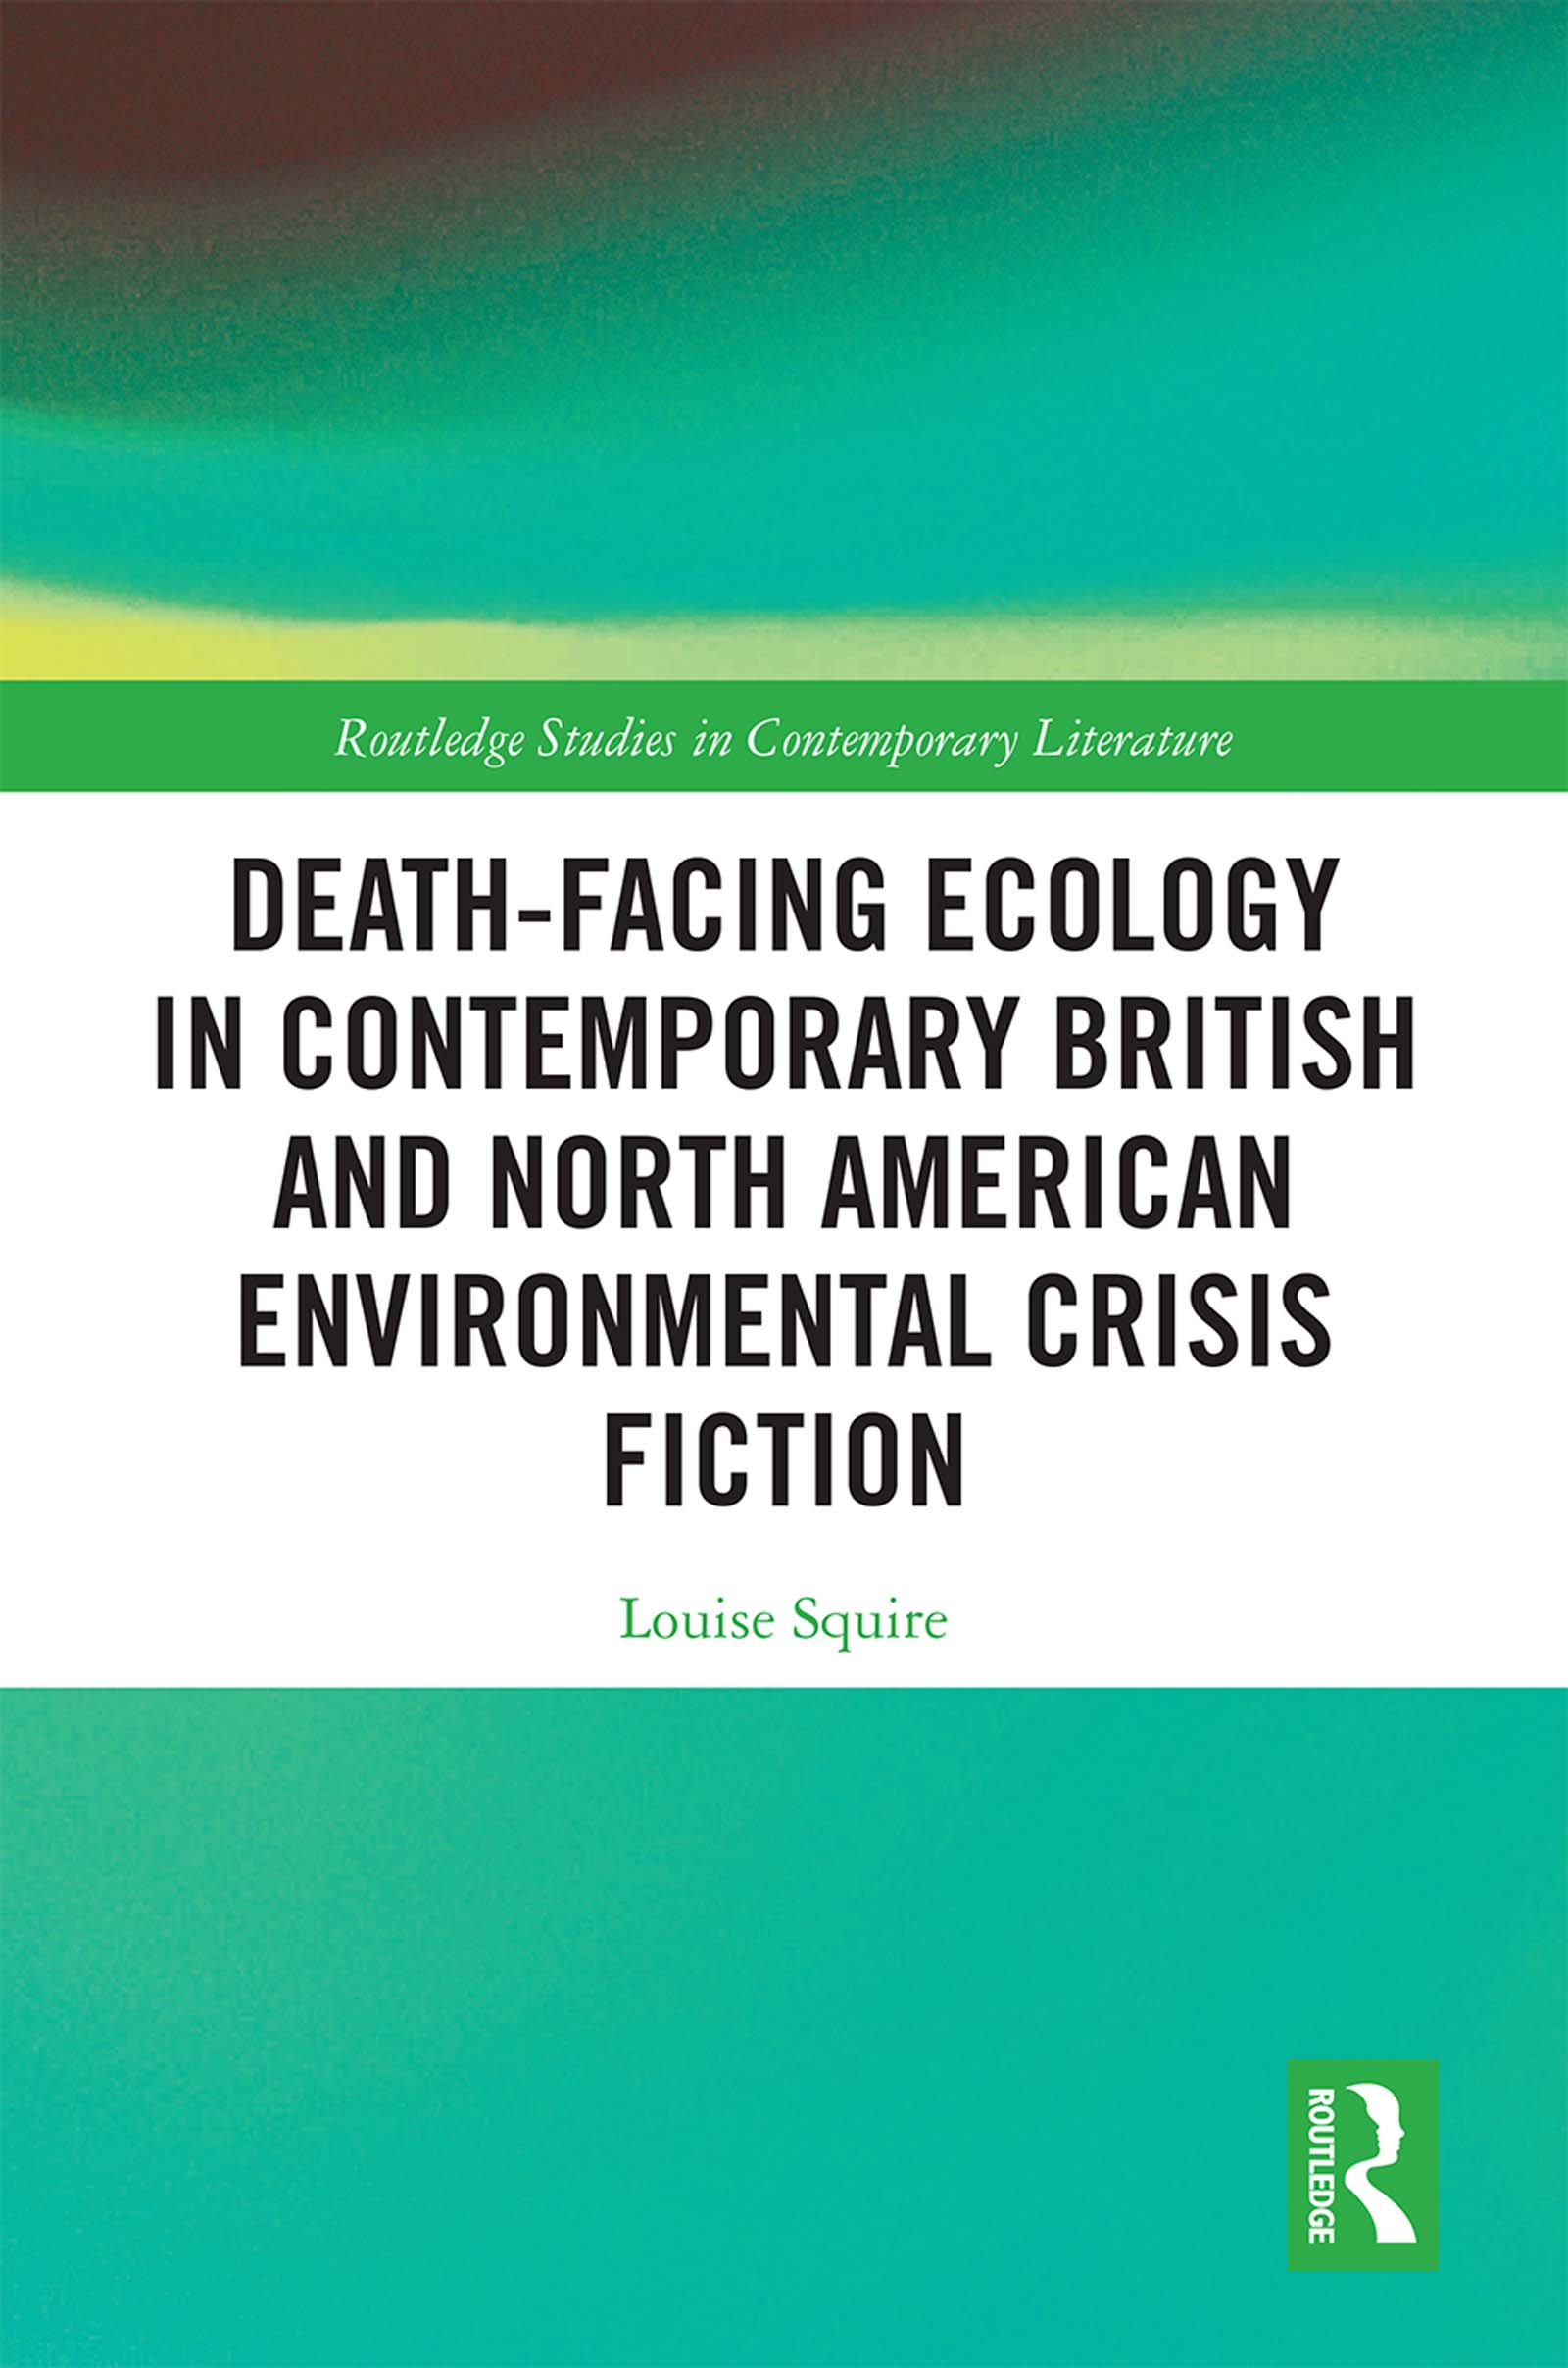 Death-Facing Ecology in Contemporary British and North American Environmental Crisis Fiction: 1st Edition (Hardback) book cover